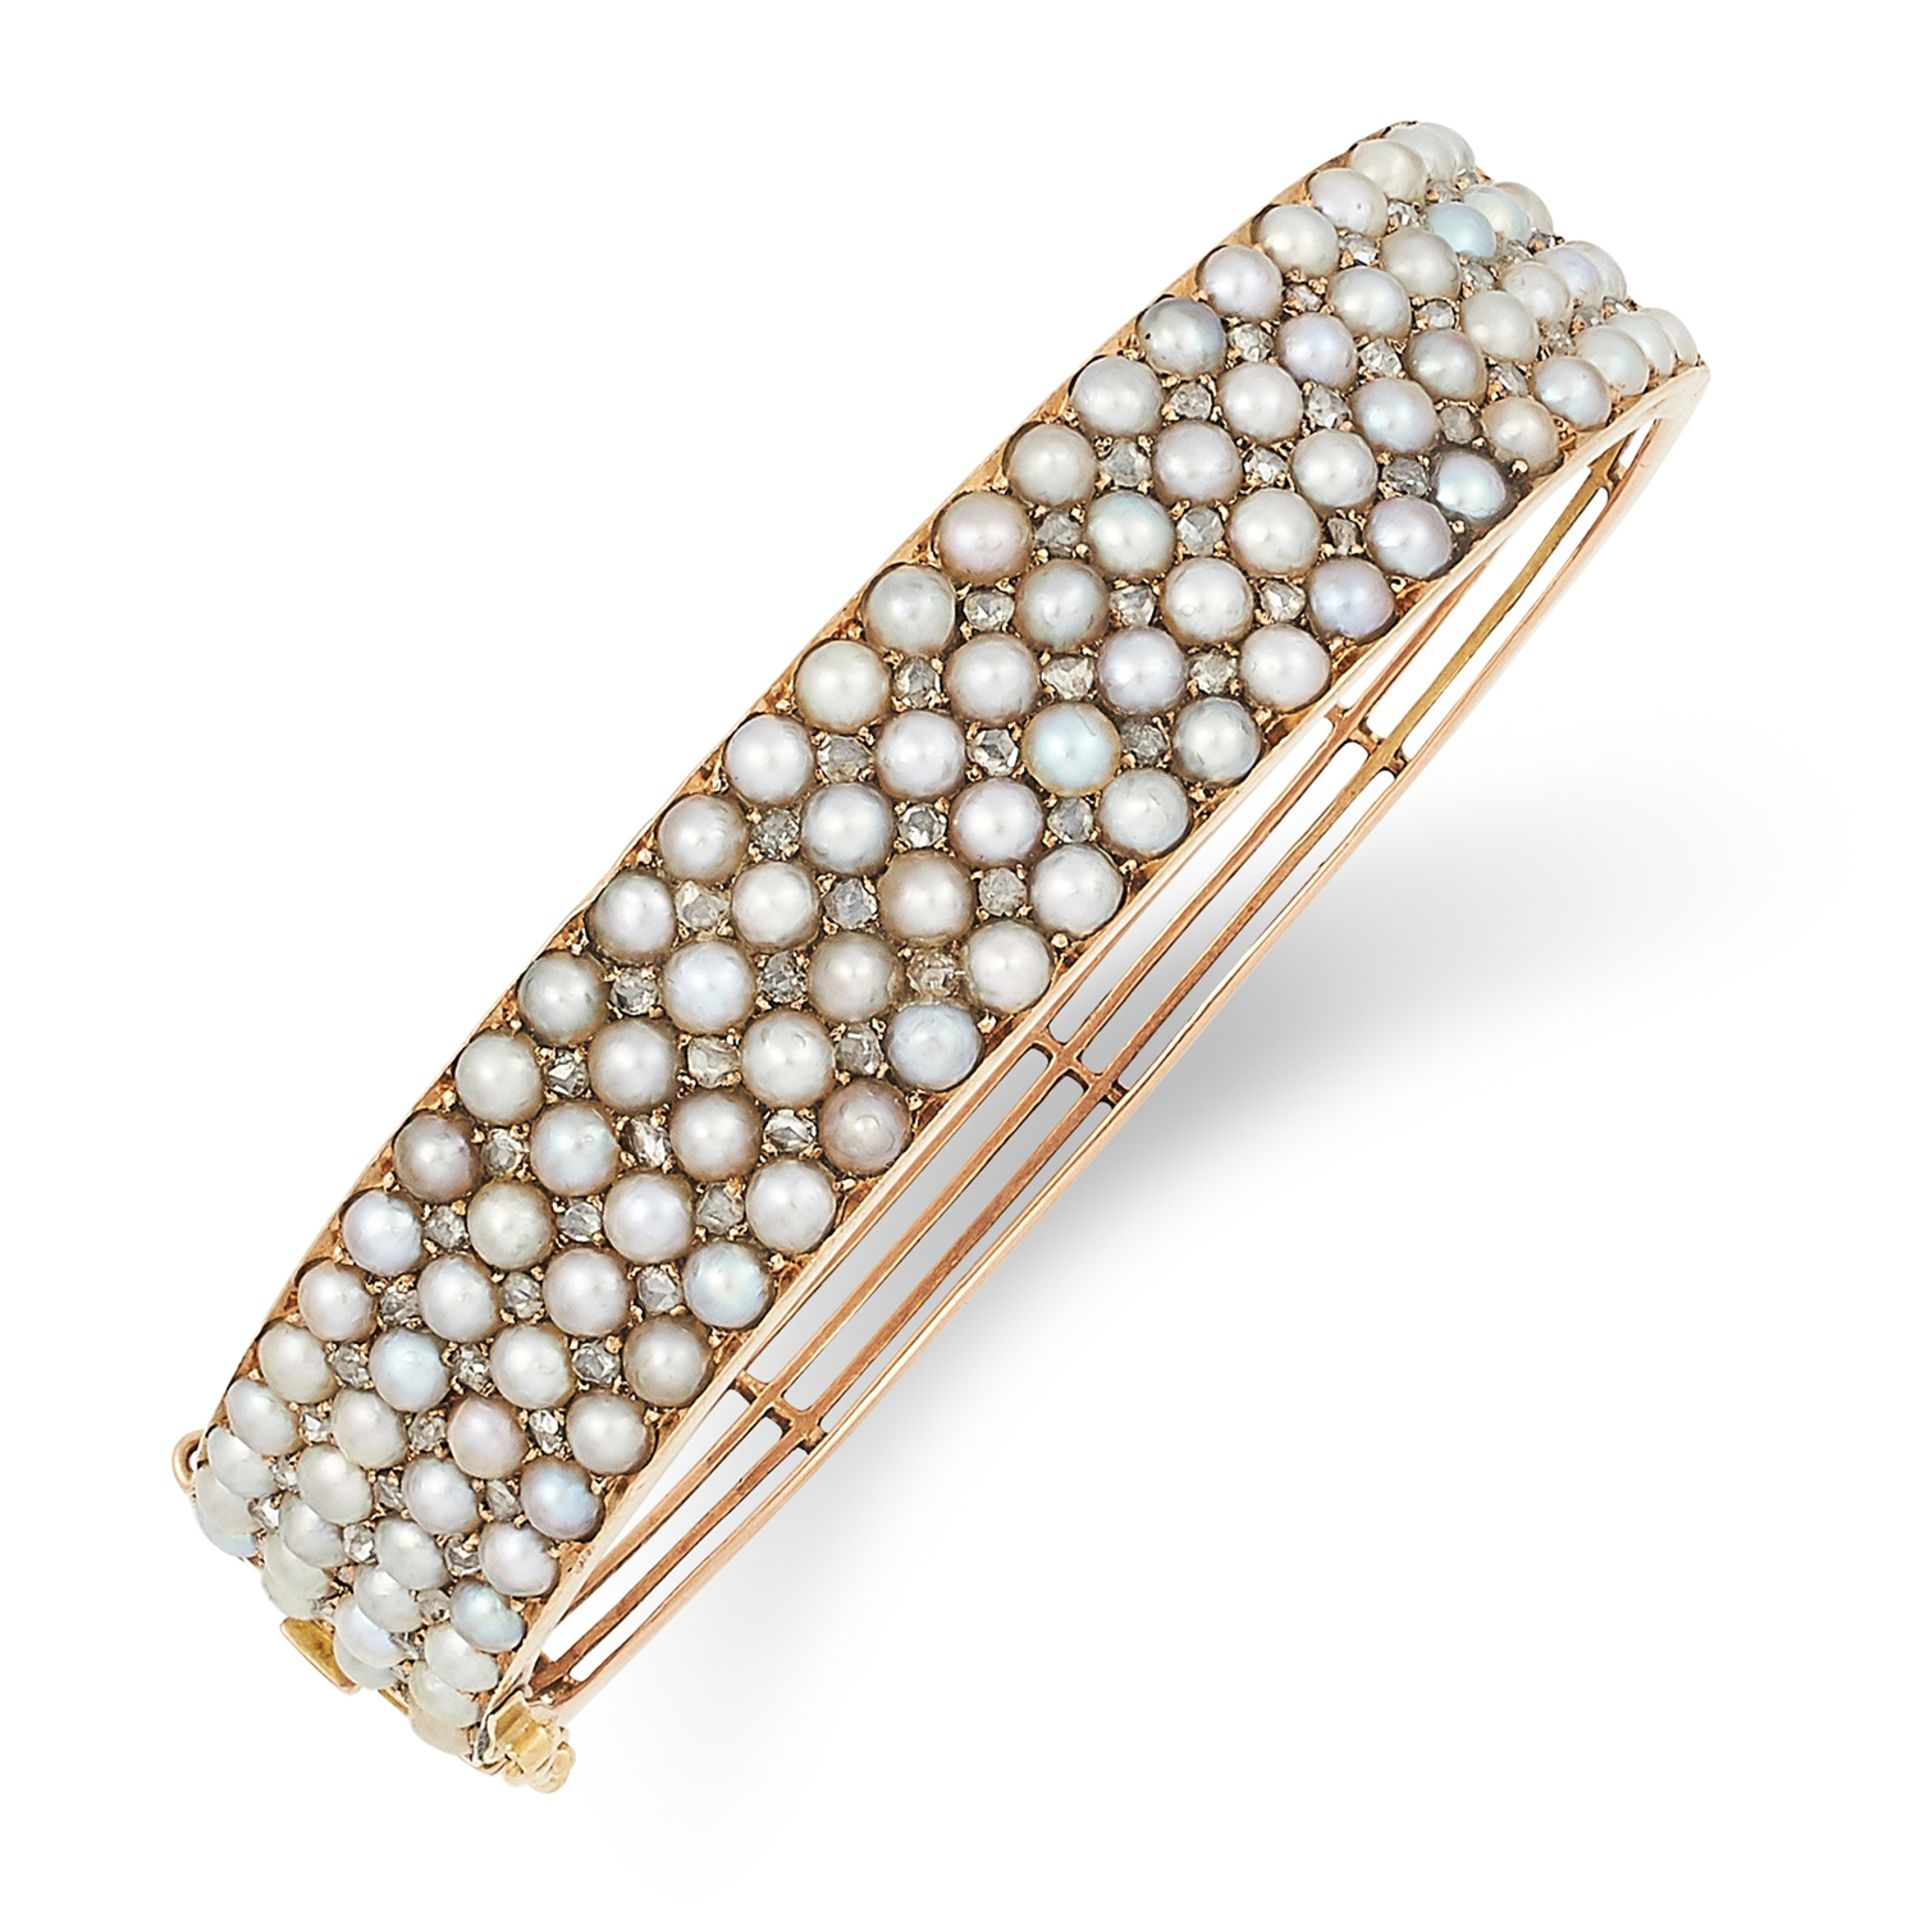 ANTIQUE PEARL AND DIAMOND BANGLE set with seed pearls and rose cut diamonds, 6cm inner diameter,